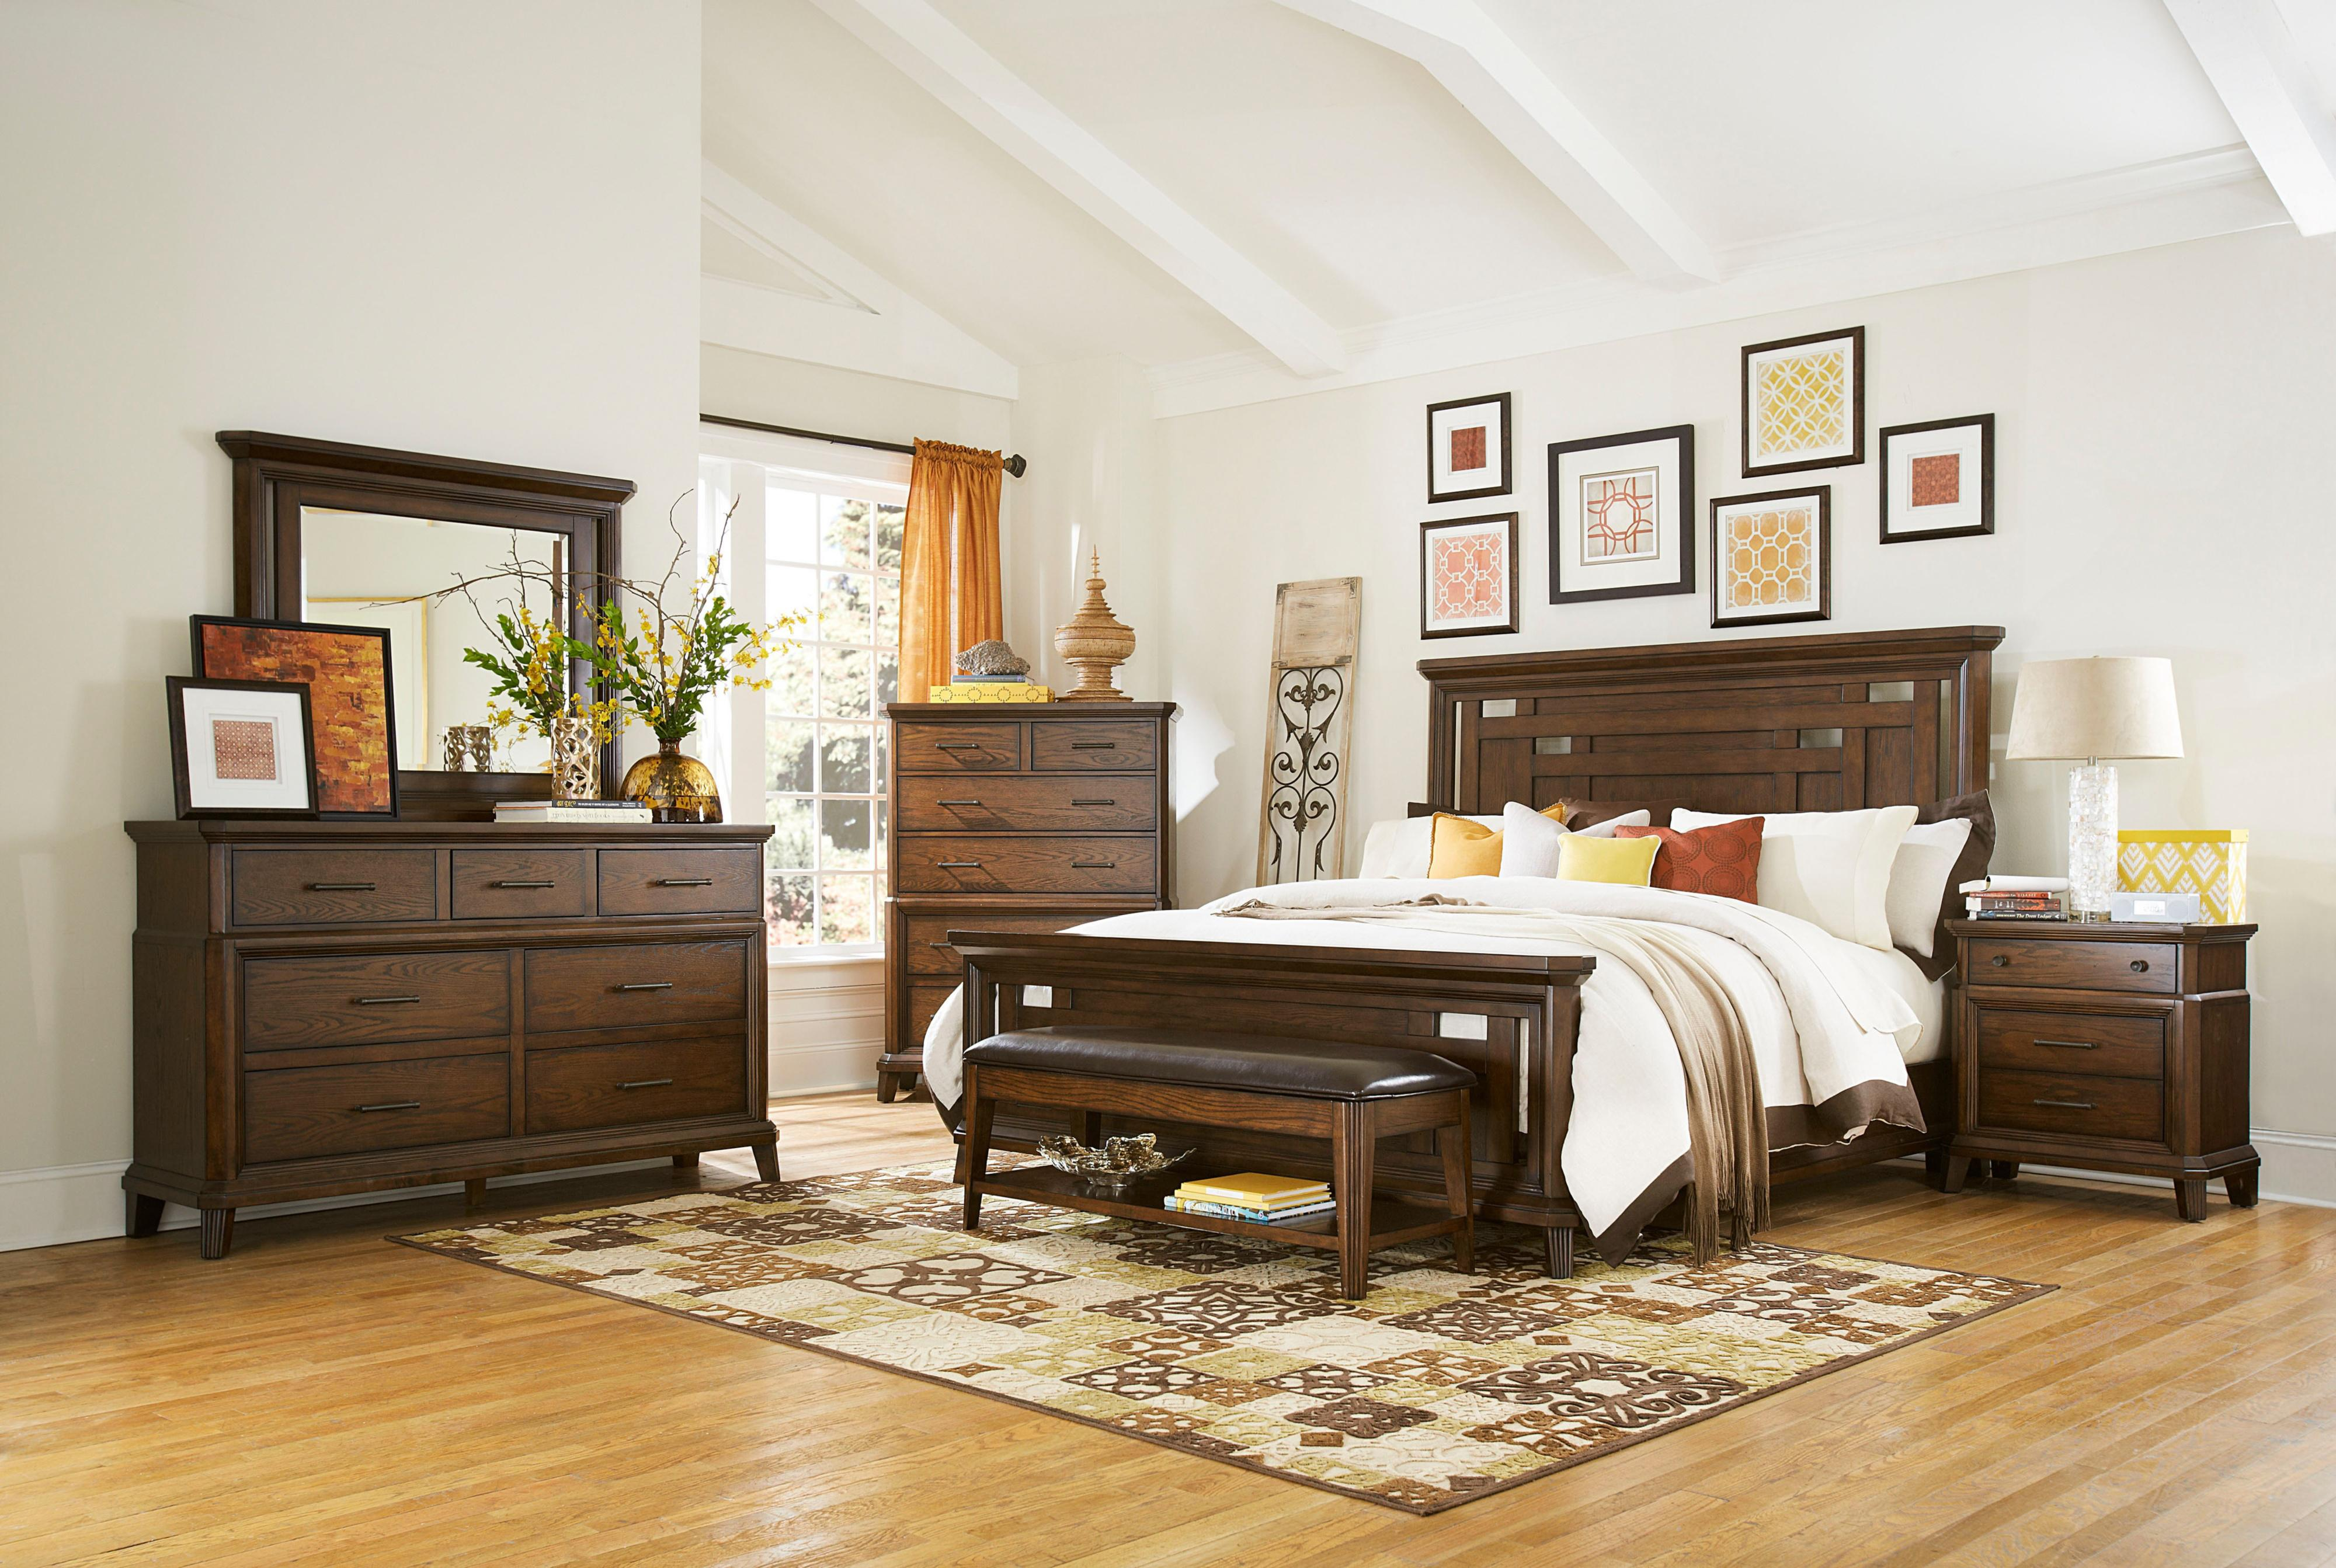 Broyhill Furniture Estes Park California King Bedroom Group - Item Number: 4364 CK Bedroom Group 1